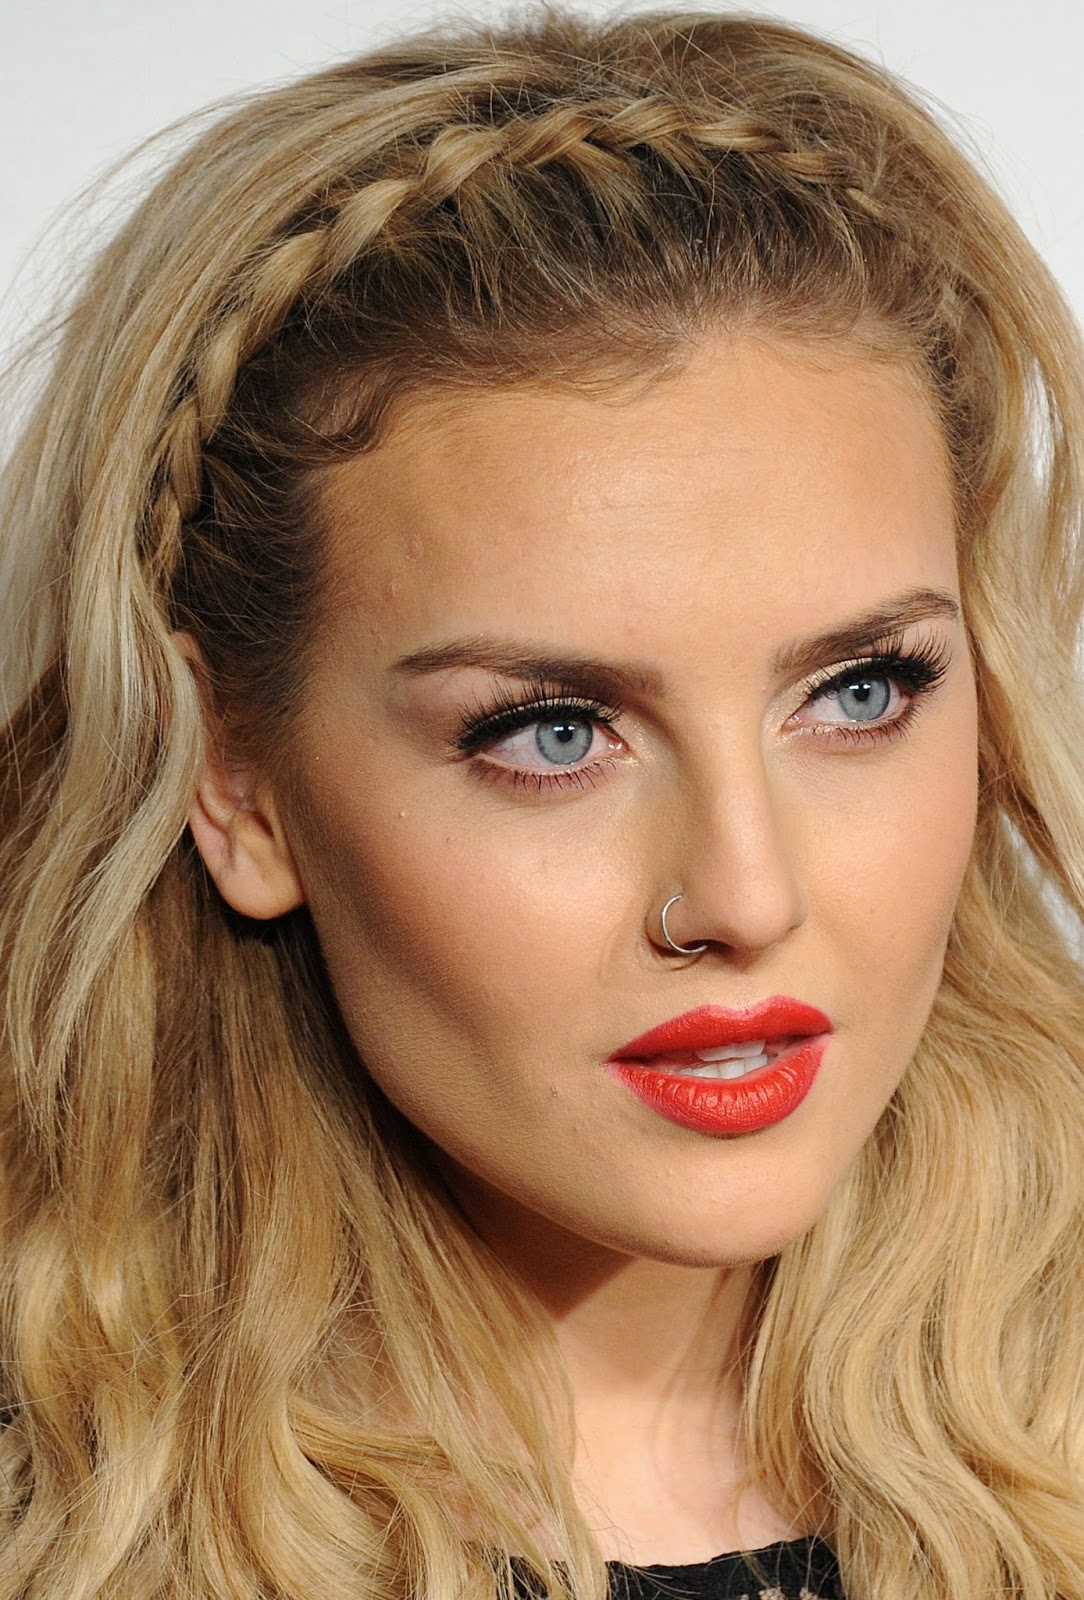 perrie edwards - photo #10